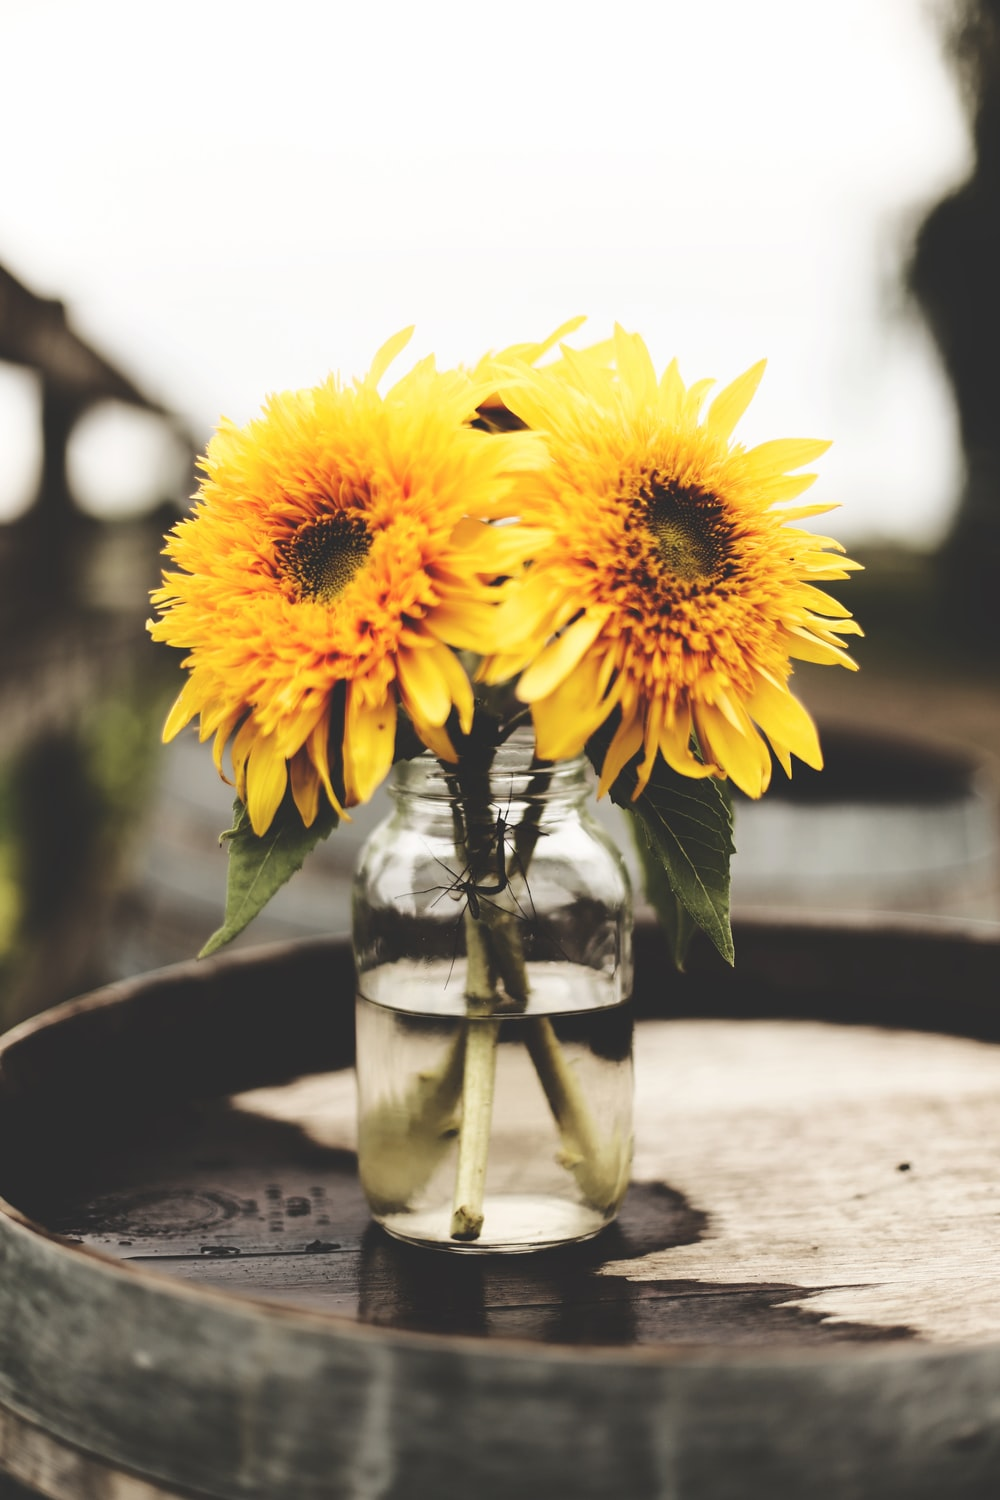 two sunflowers in glass vase with water